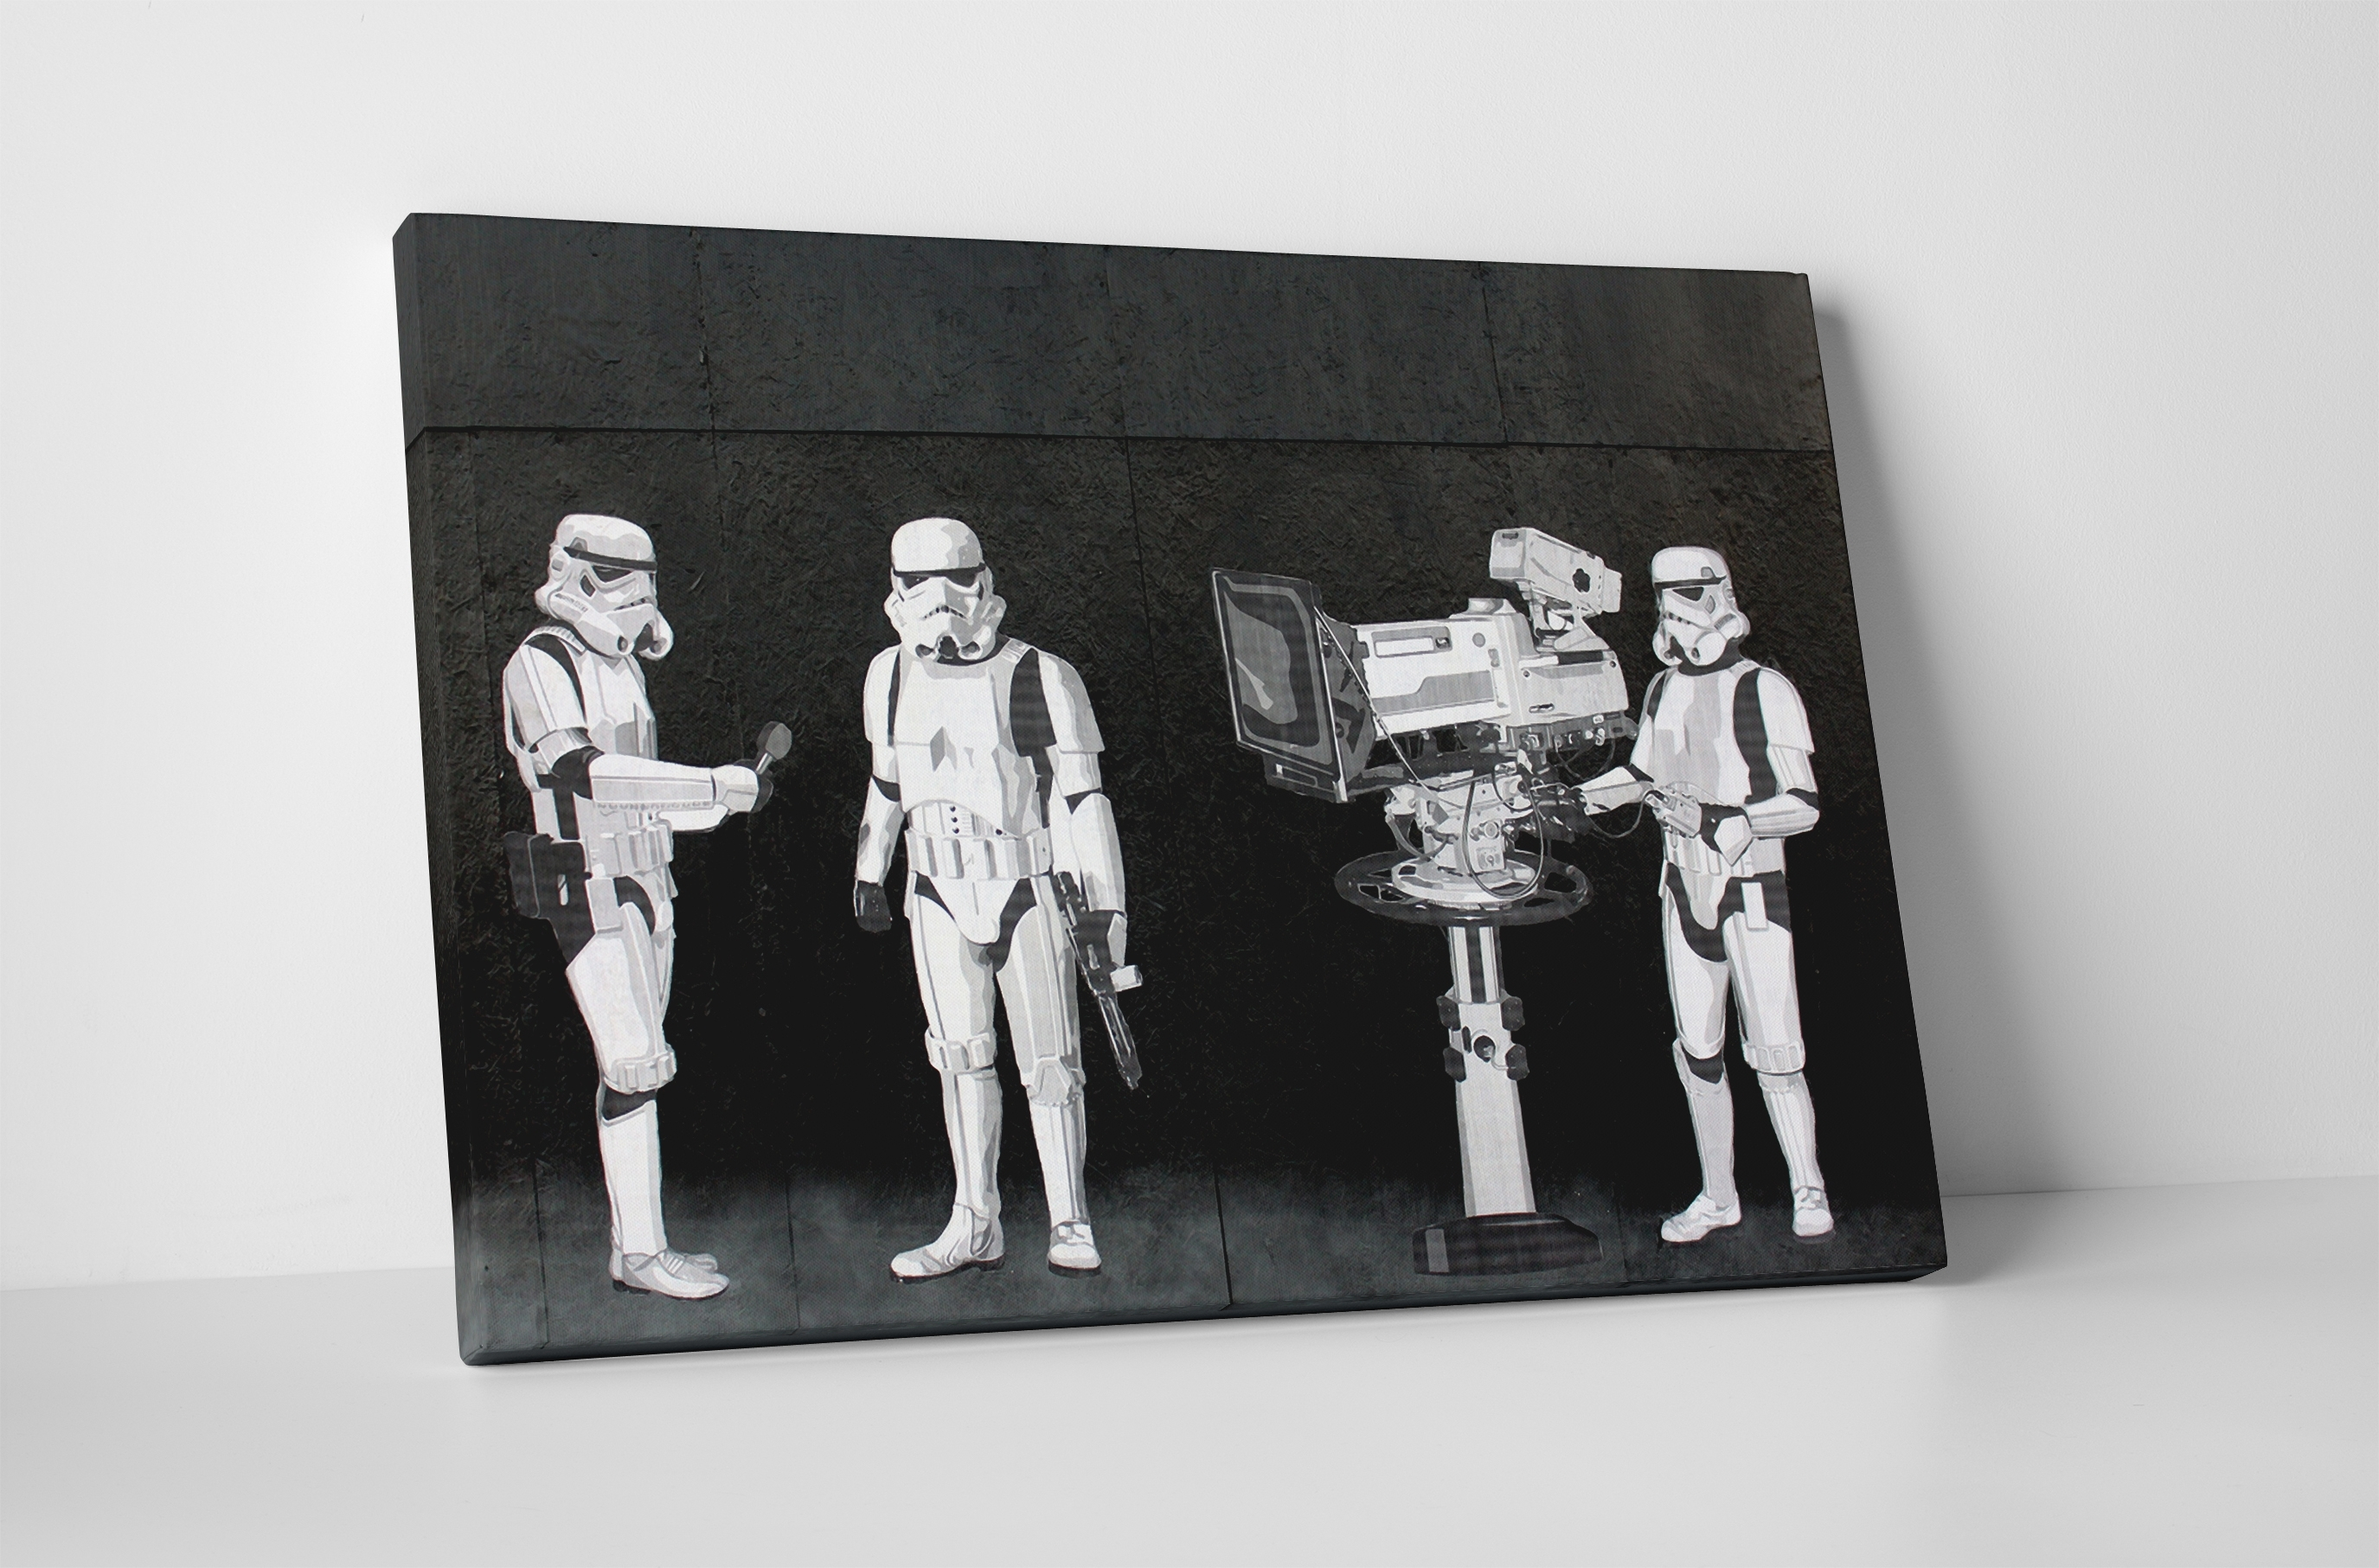 Banksy Stormtroopers Filming Oscars Canvas Wall Art Regarding Most Up To Date Movies Canvas Wall Art (View 3 of 15)